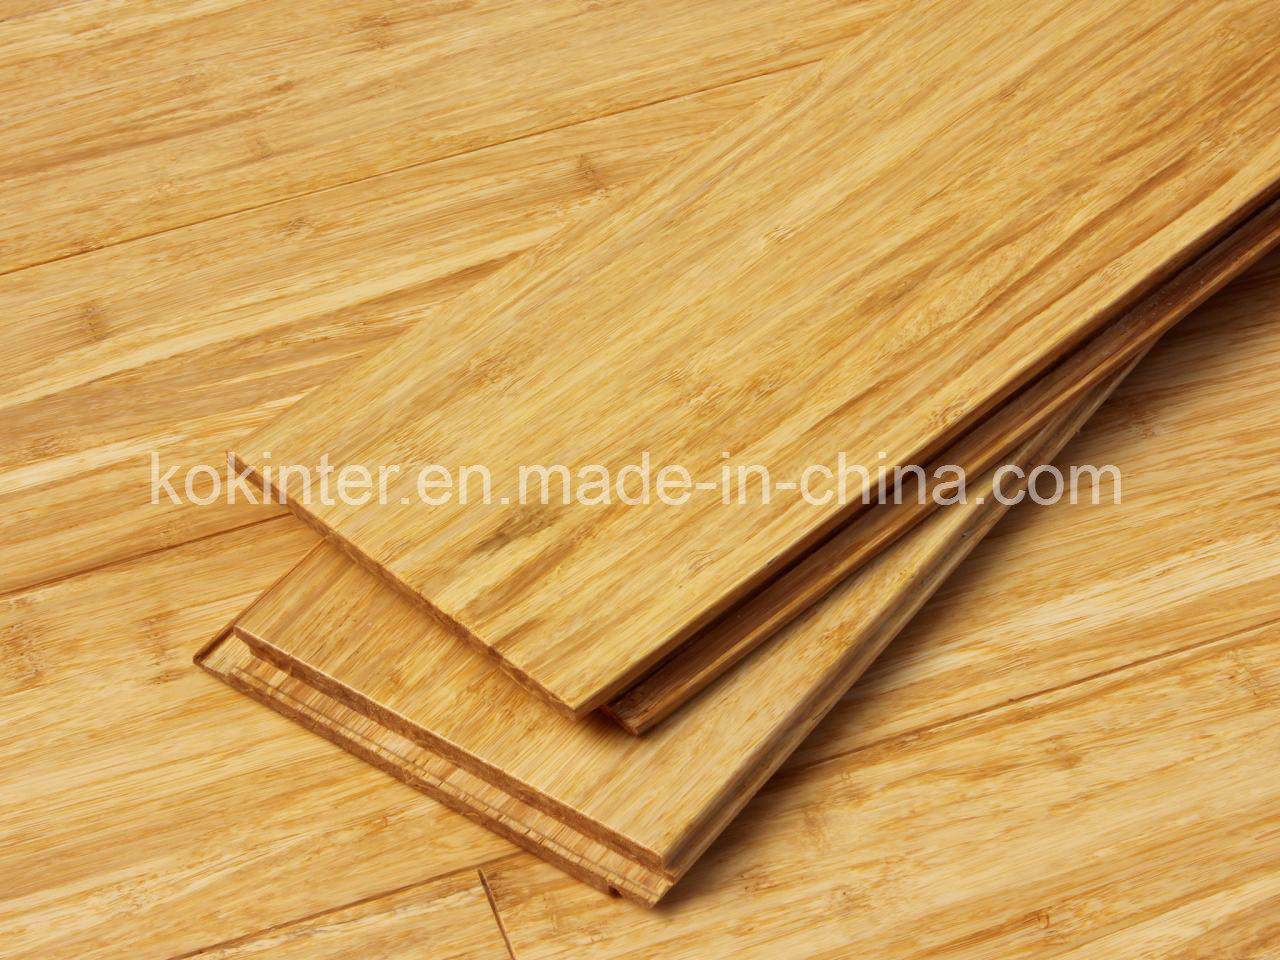 carbonized picture blogule flooring bamboo solid floors tag ideas houses modern of interior laminate vertical